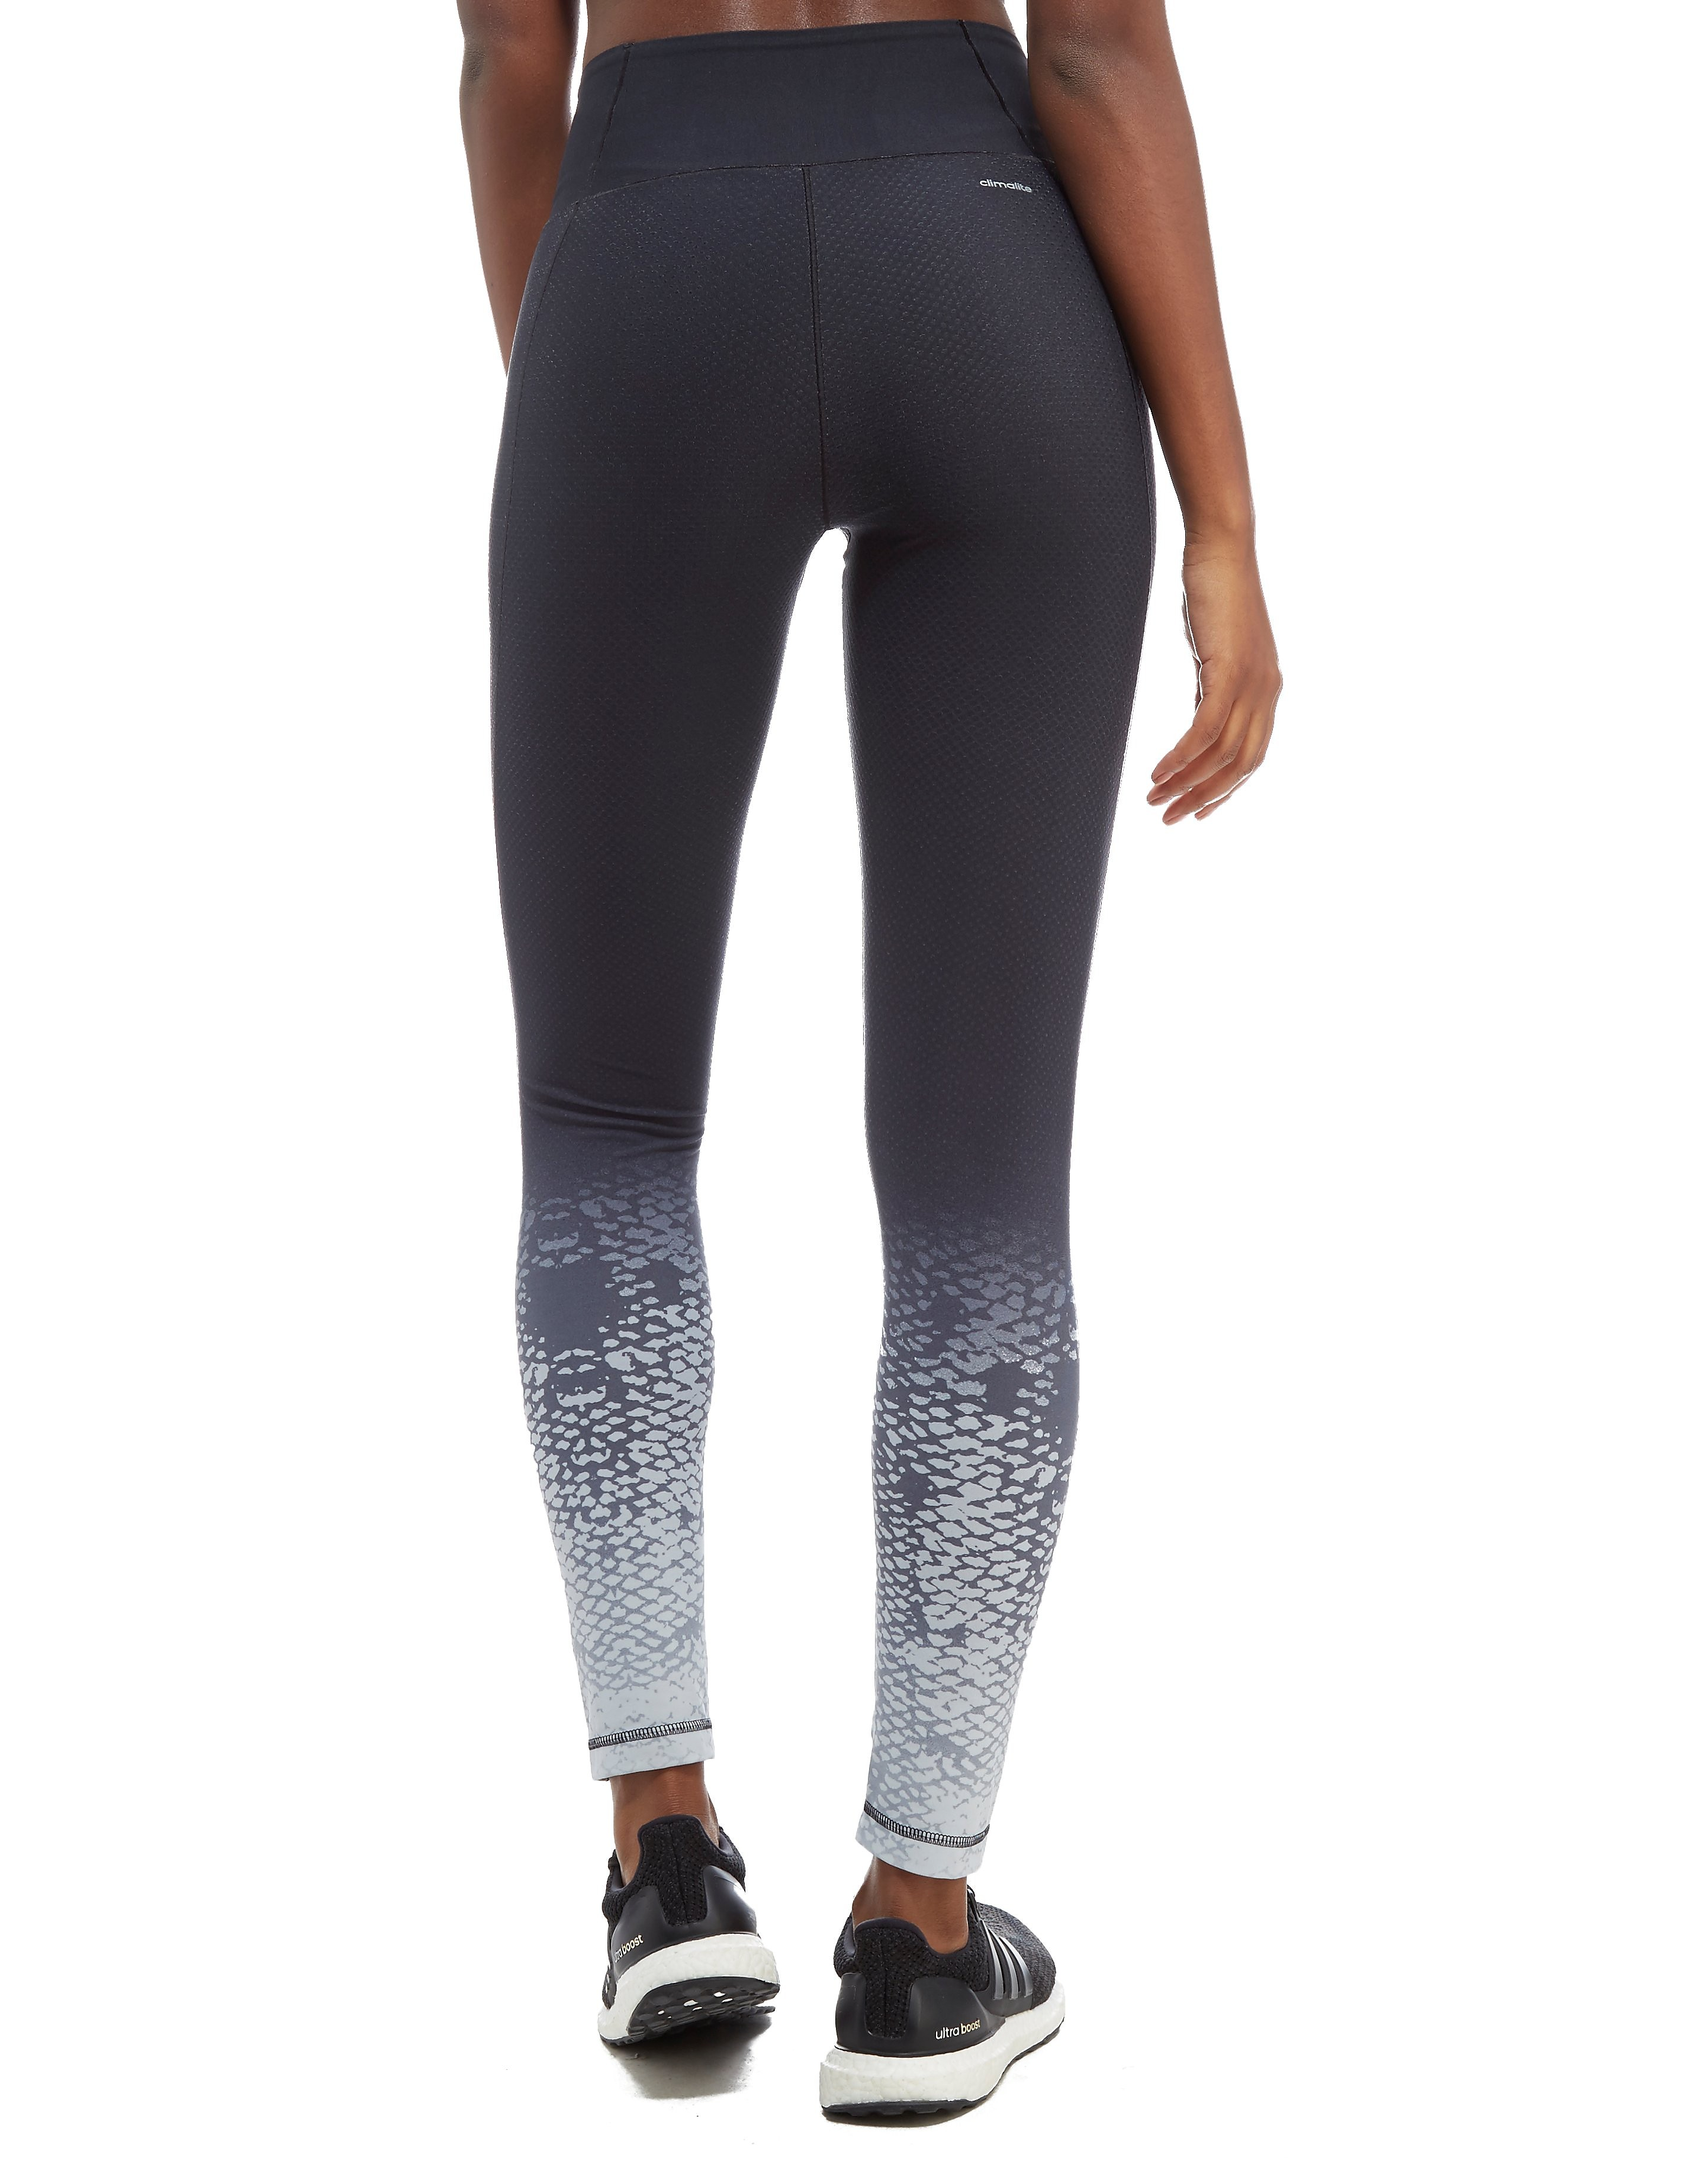 adidas MIRACLE SCULPT Women's Tights